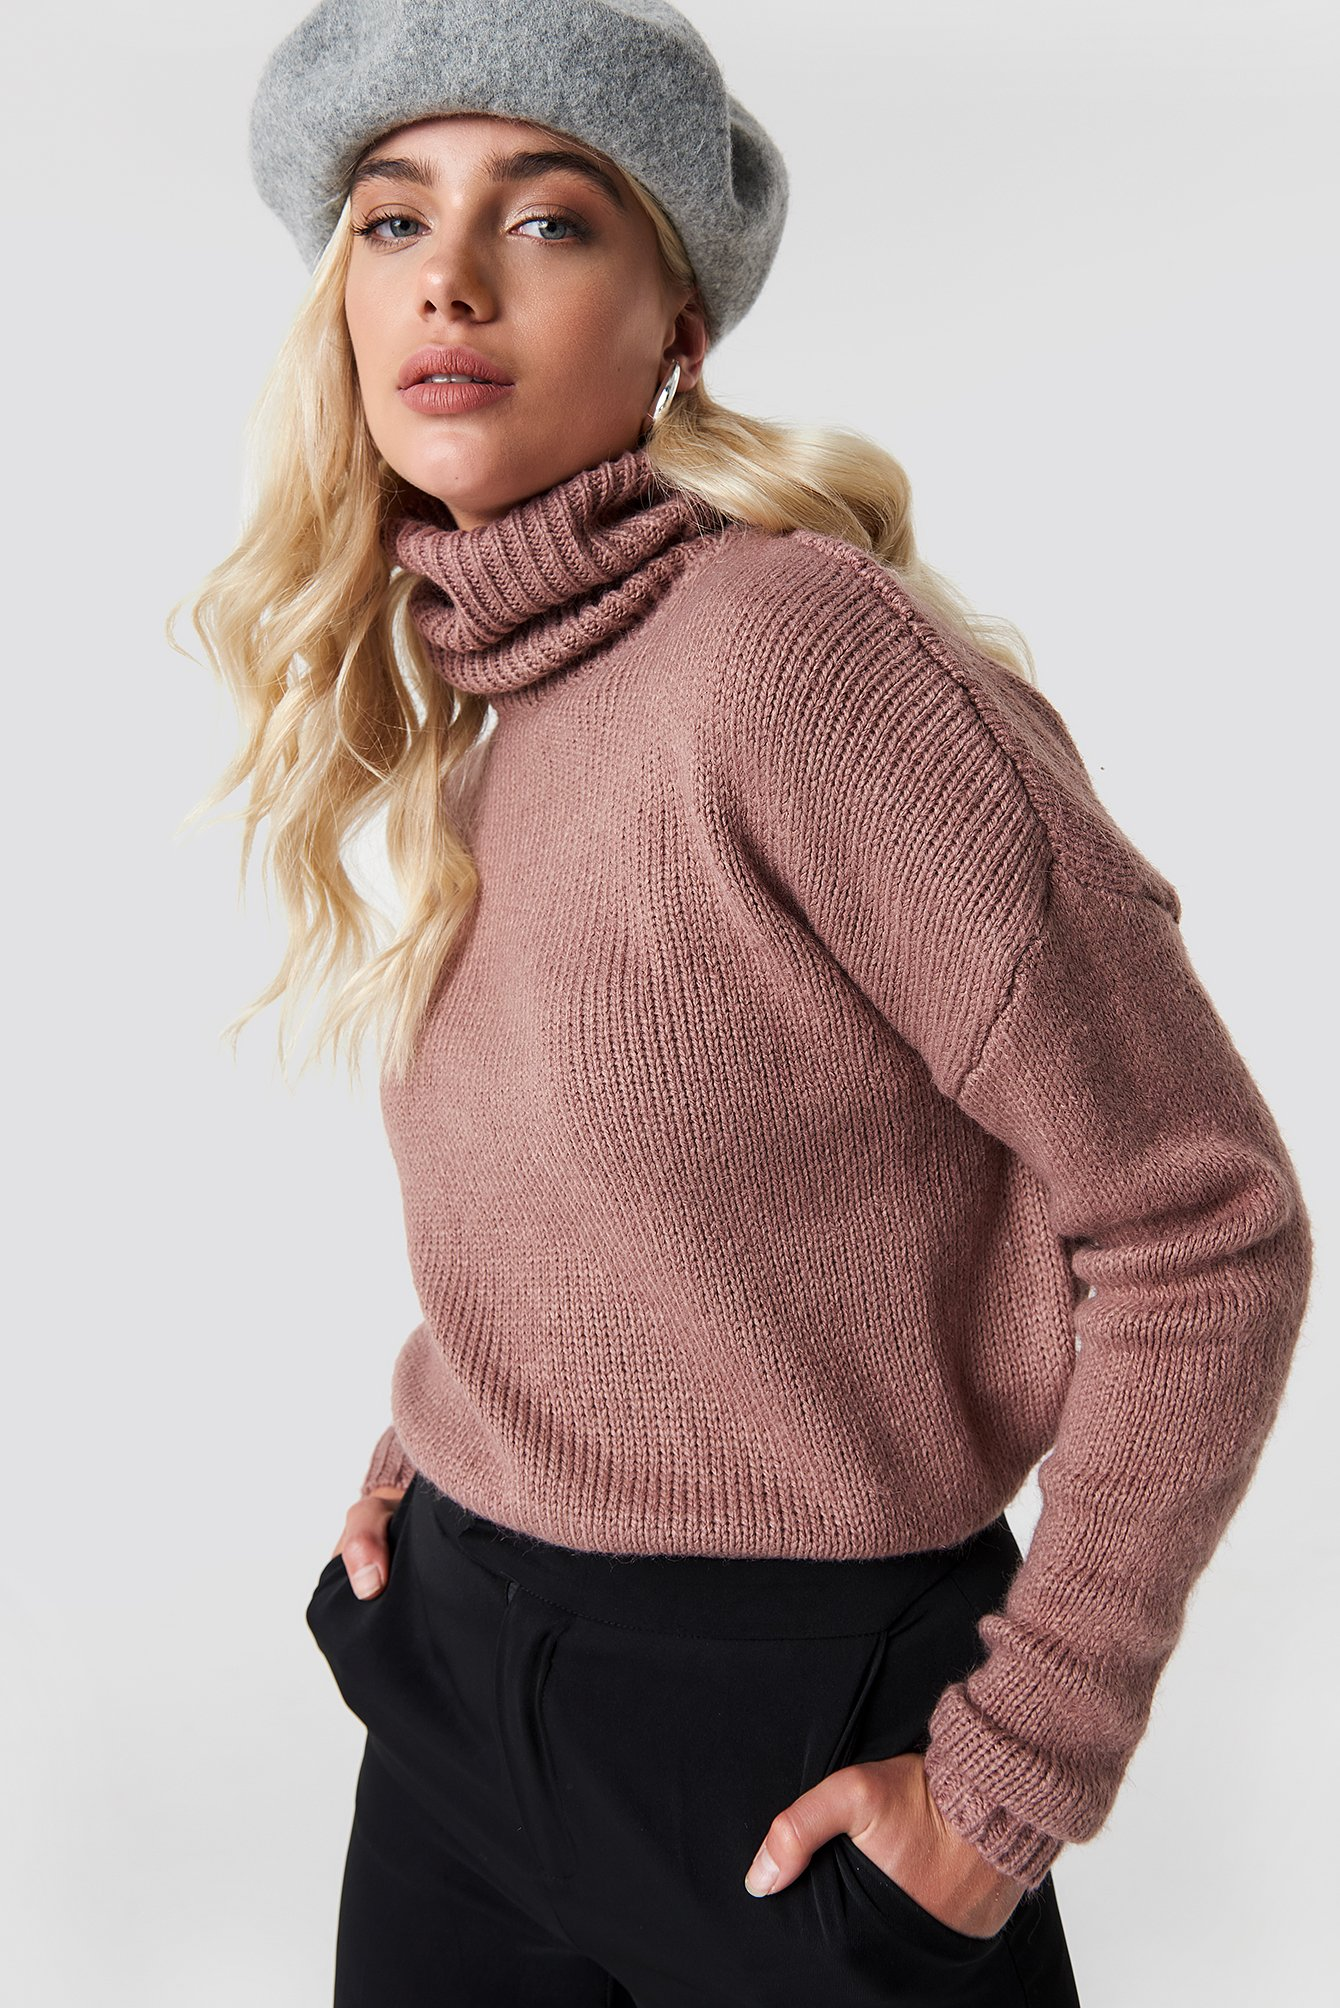 Folded Oversize Short Knitted Sweater NA-KD.COM